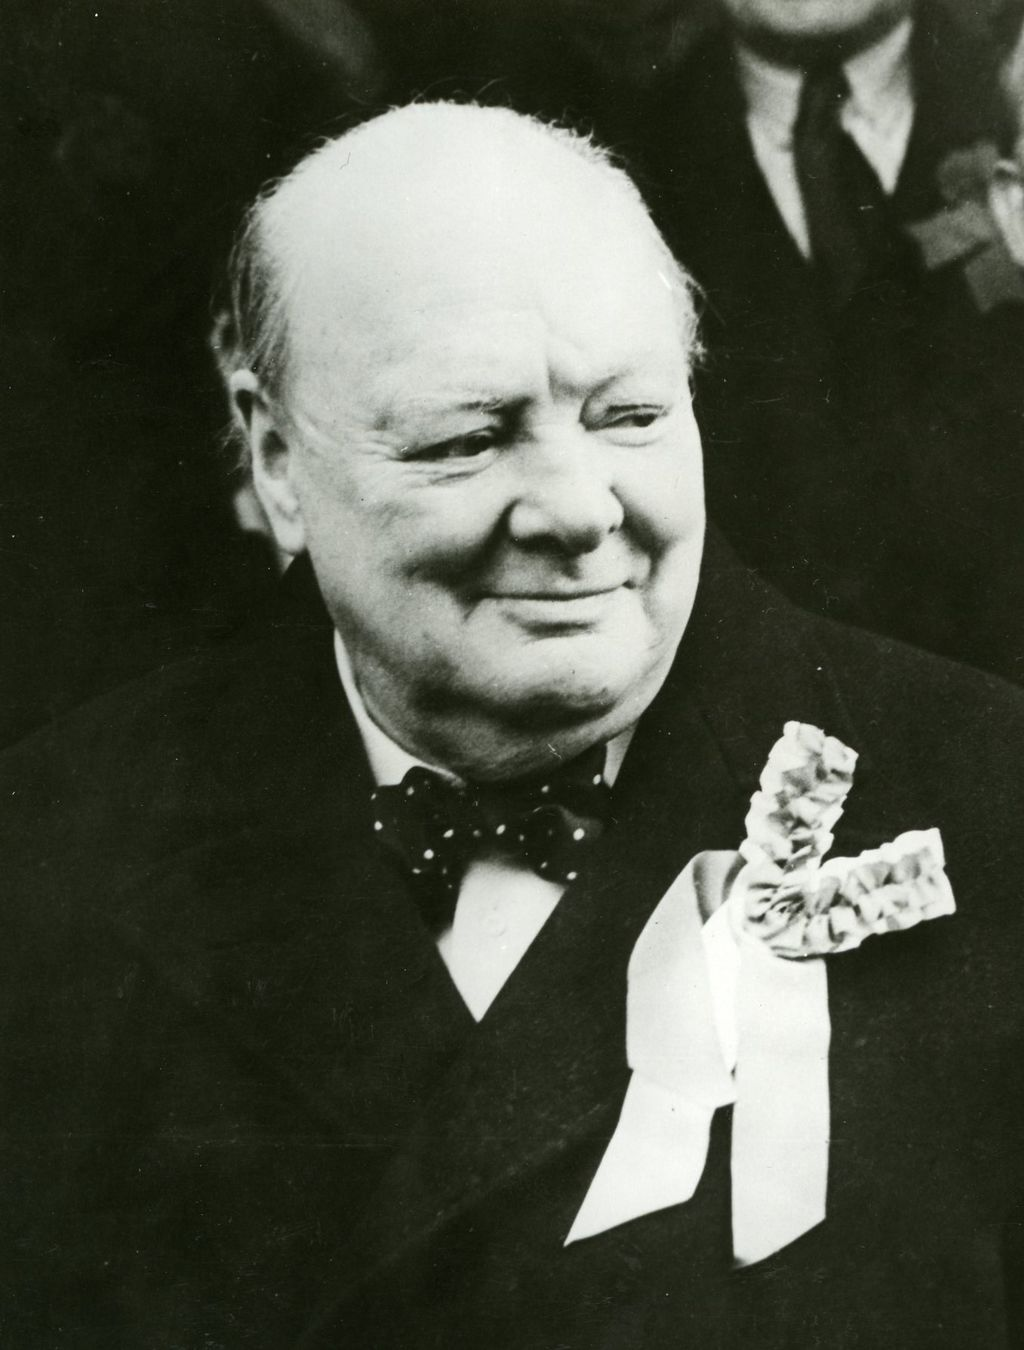 Exponat: Photo: Churchill, Winston, 1951